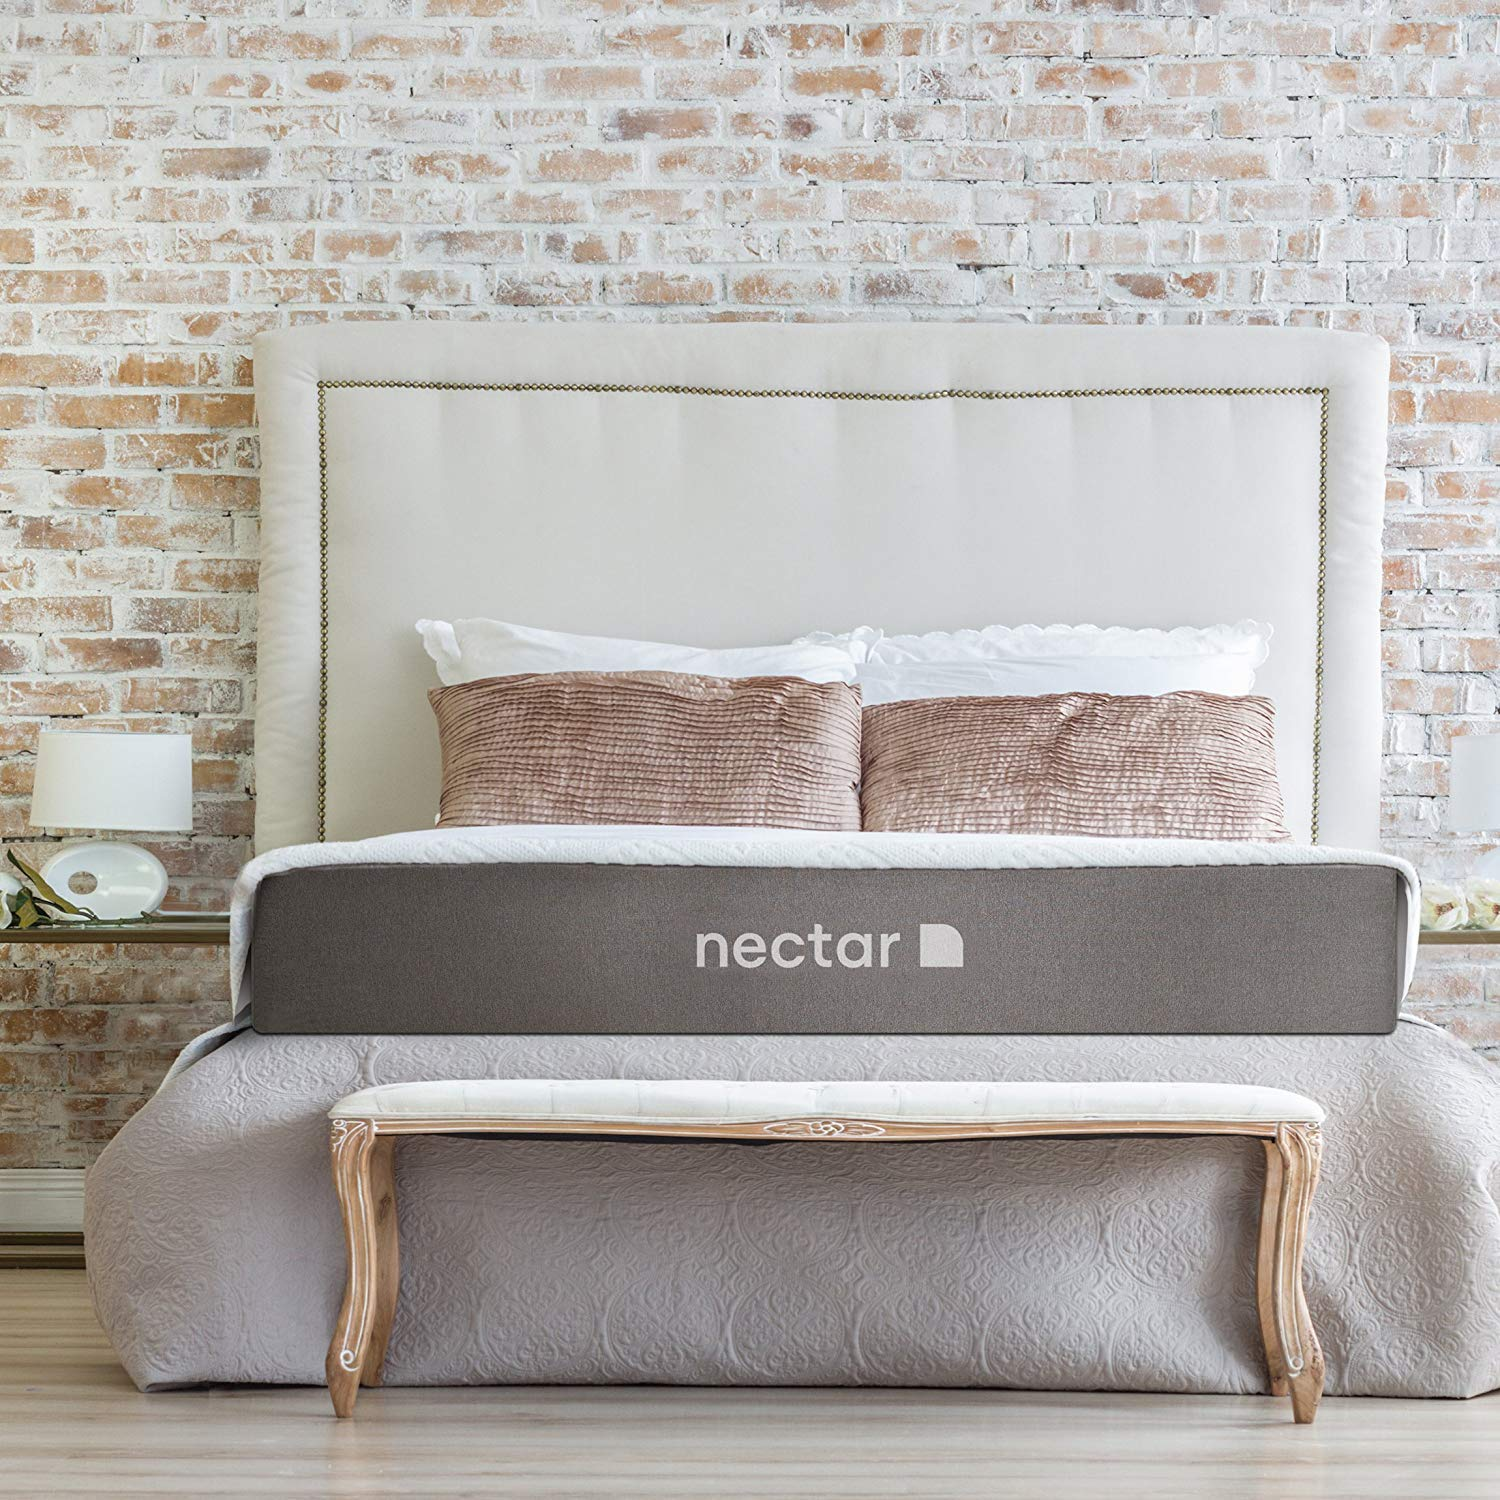 Nectar Full Memory Foam Mattress Under 1000 topdatedhomeproducts